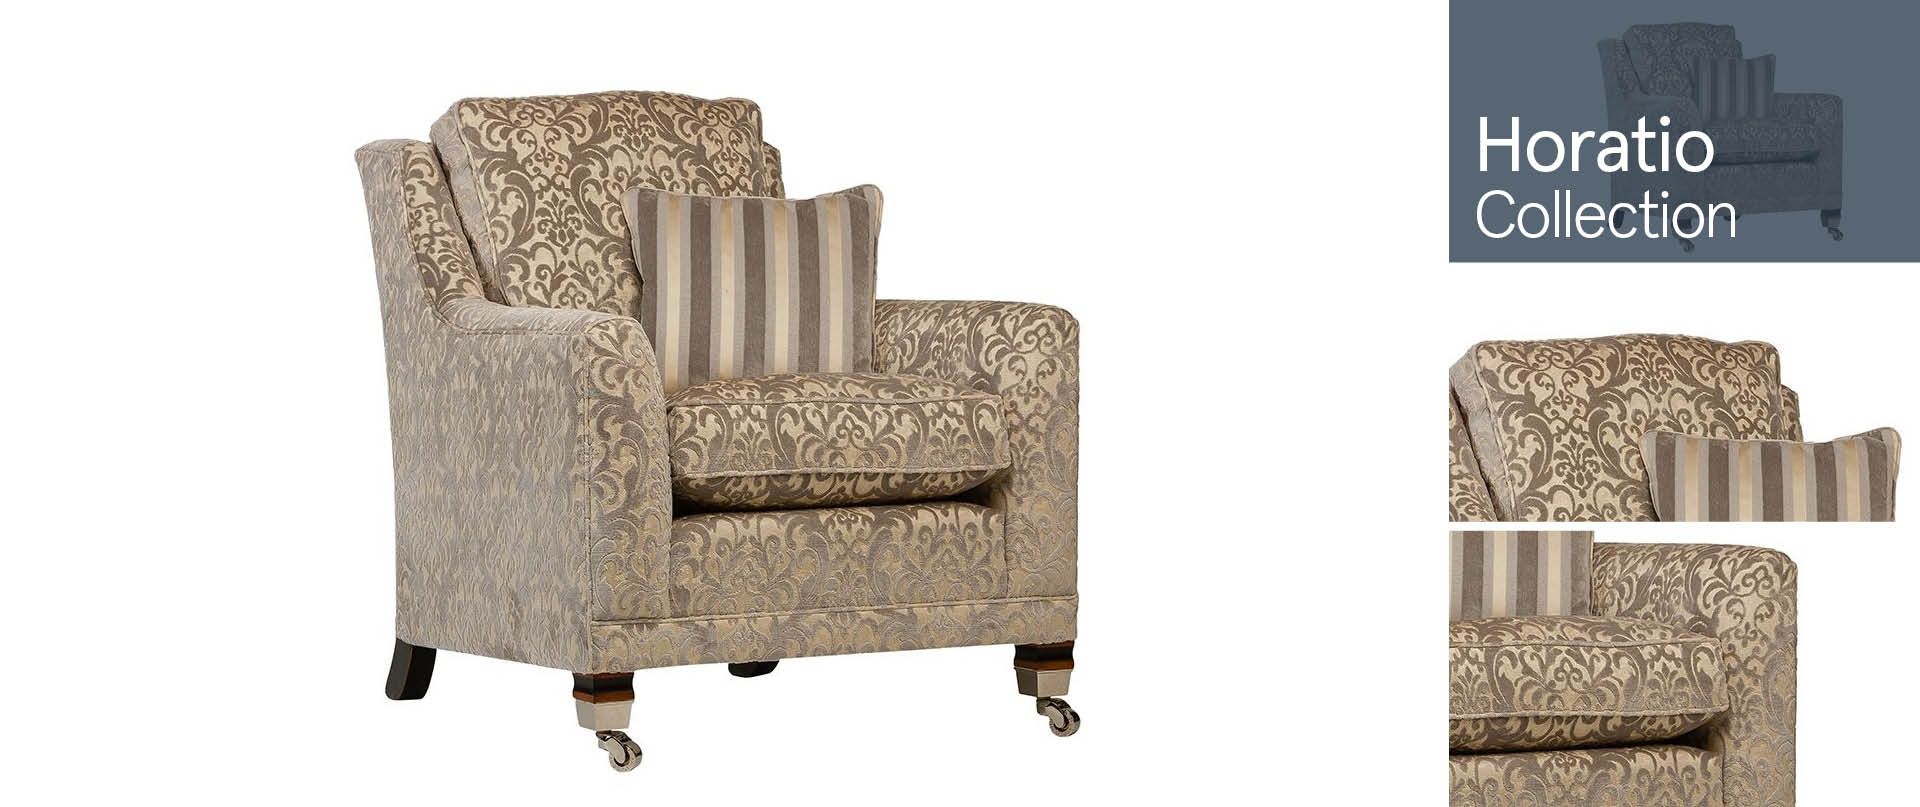 Horatio Chairs and Footstools Ranges